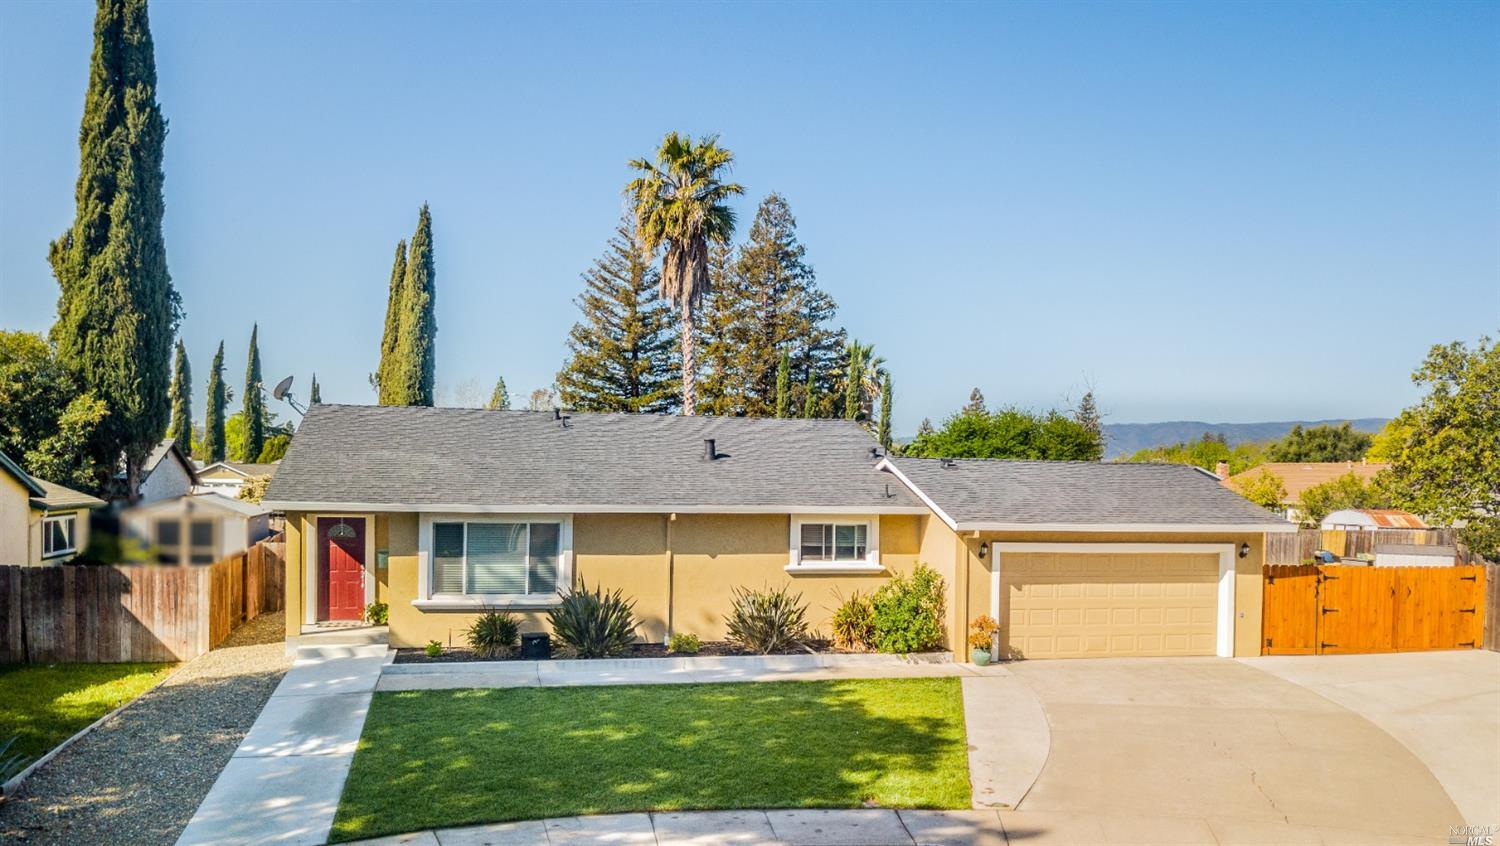 Check out this beautifully remodeled home!  Positioned at the end of a court, this stunner has been